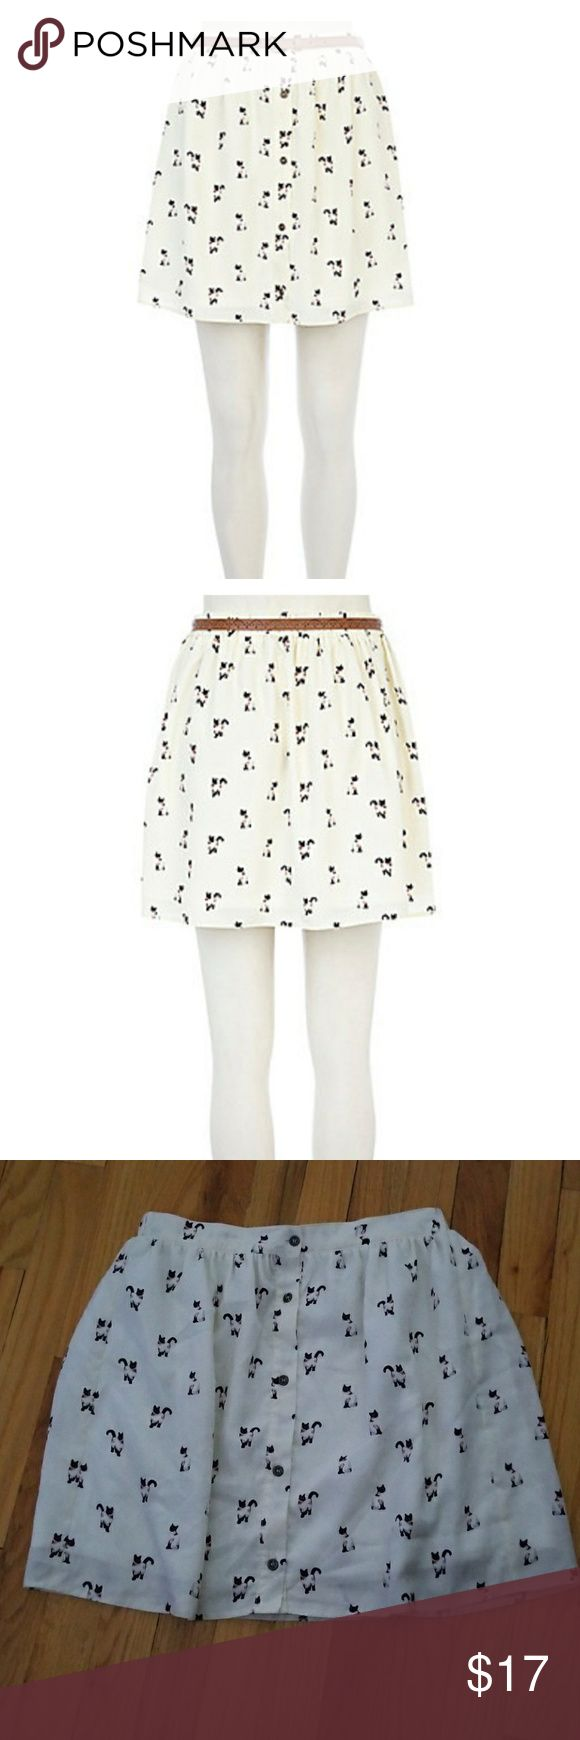 """River Island Cat Button-down Skirt River Island Cat Button-down skirt. Cats adorn the entire skirt, front and back. Size 6 US (UK 10). Cream color. Button-down in front. Fully lined. Does not come with brown belt. Elastic on back of skirt at waist. See last pic of little mark (stain - unsure if it will come out, didn't try). 14"""" waist laying flat. 16.5"""" length. Flowy. Great condition otherwise. River Island Skirts"""